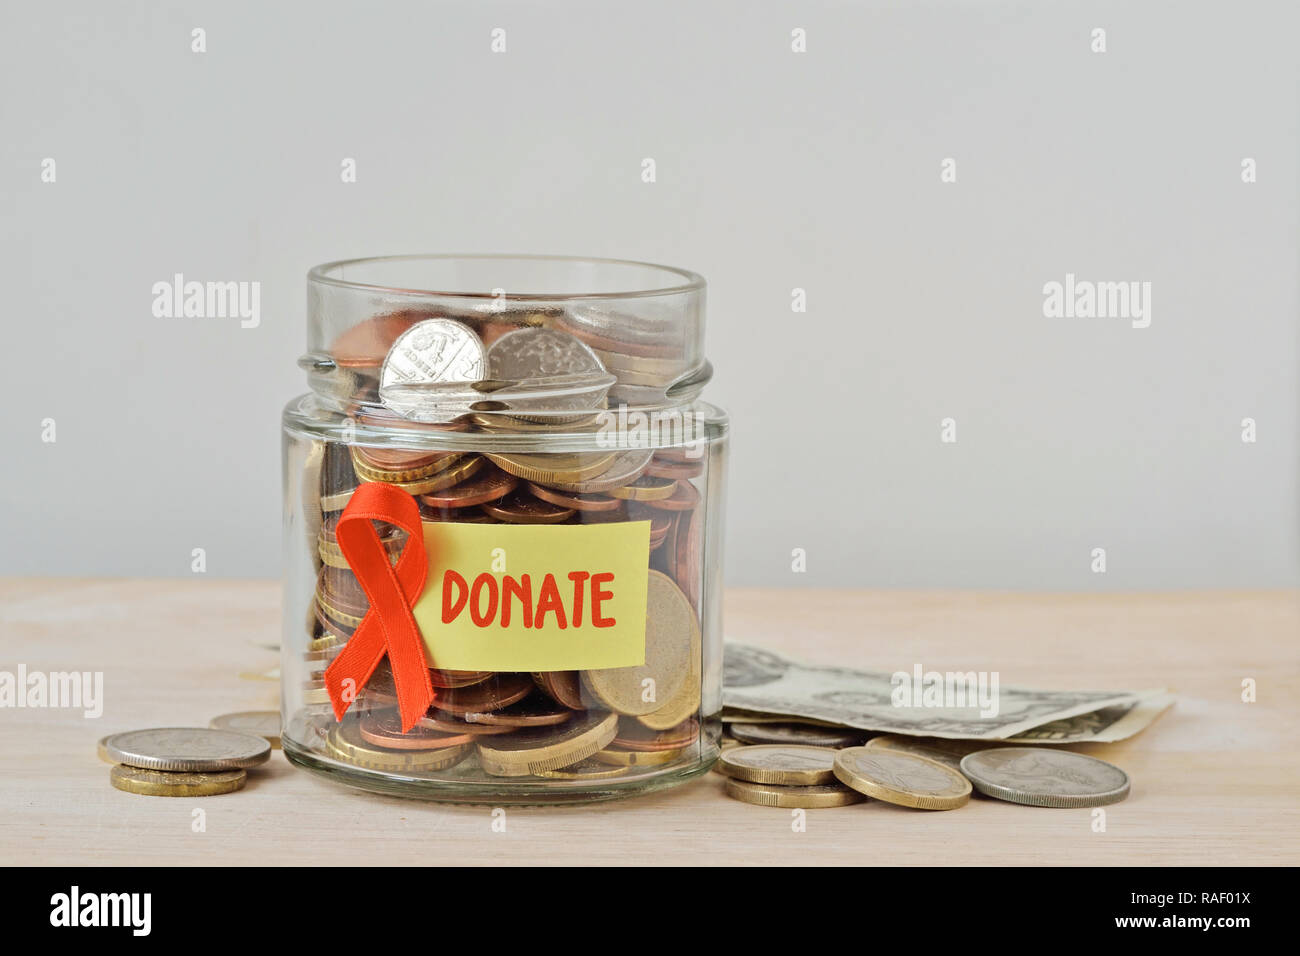 Money jar full of coins with orange ribbon and Donate label - Concept of leukemia, kidney cancer, multiple sclerosis and animal abuse charity - Stock Image